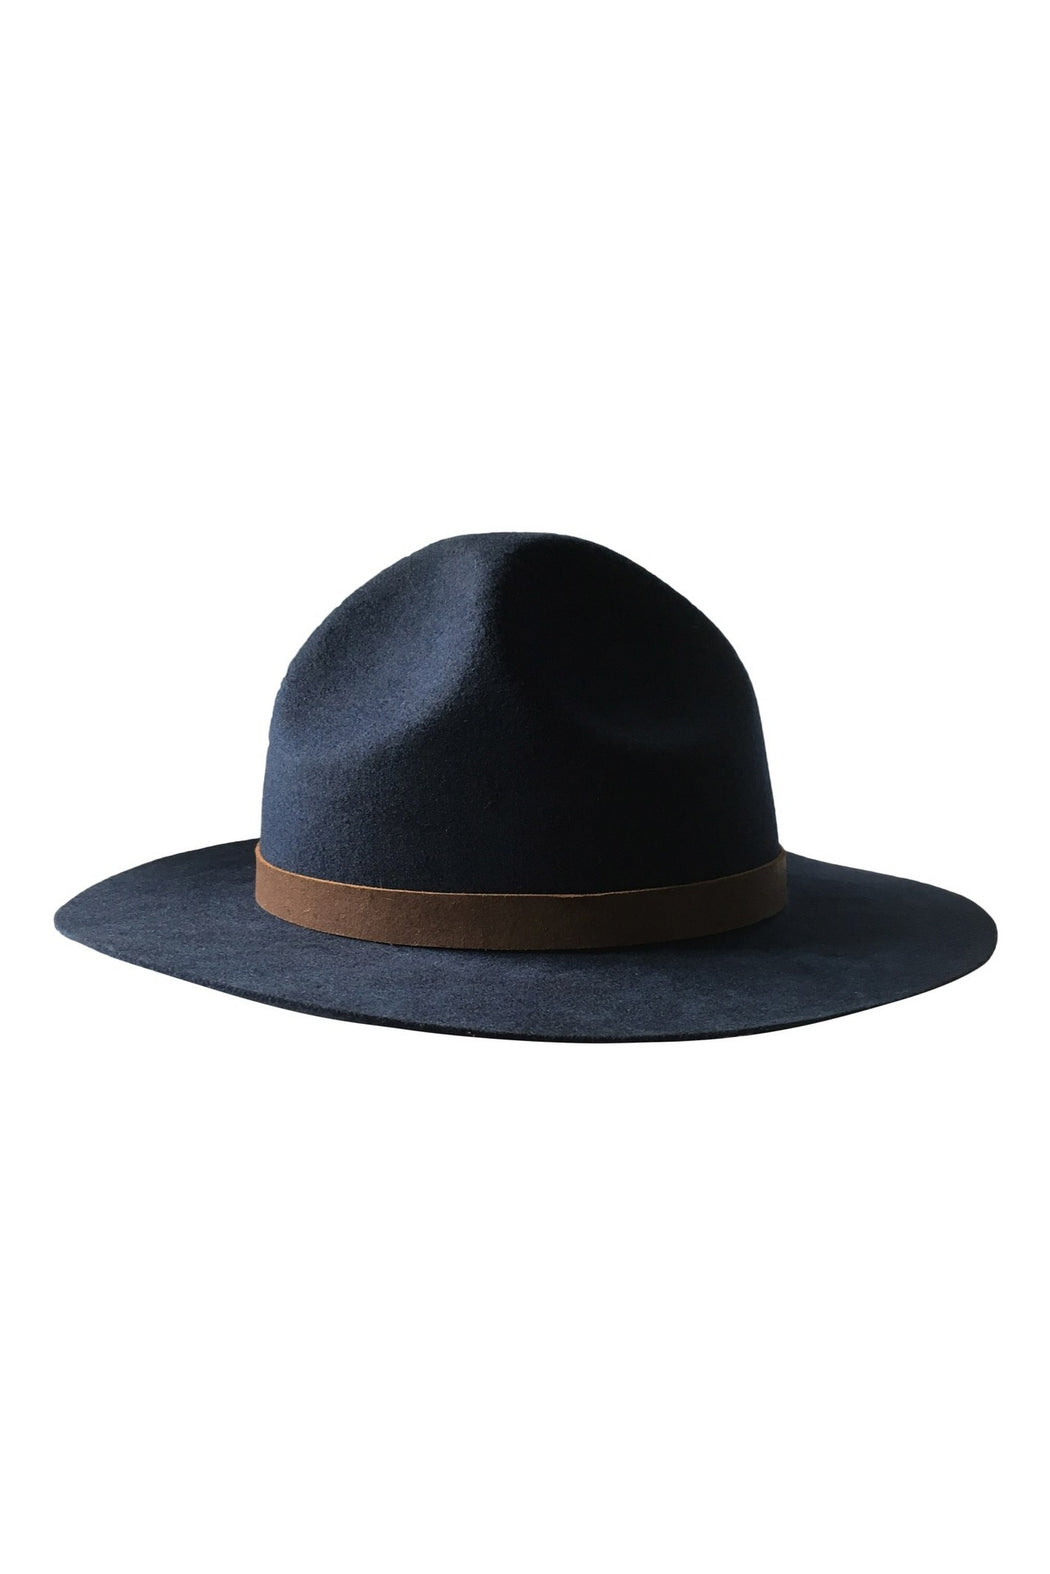 Mounty Traditional Wool Hat in Navy